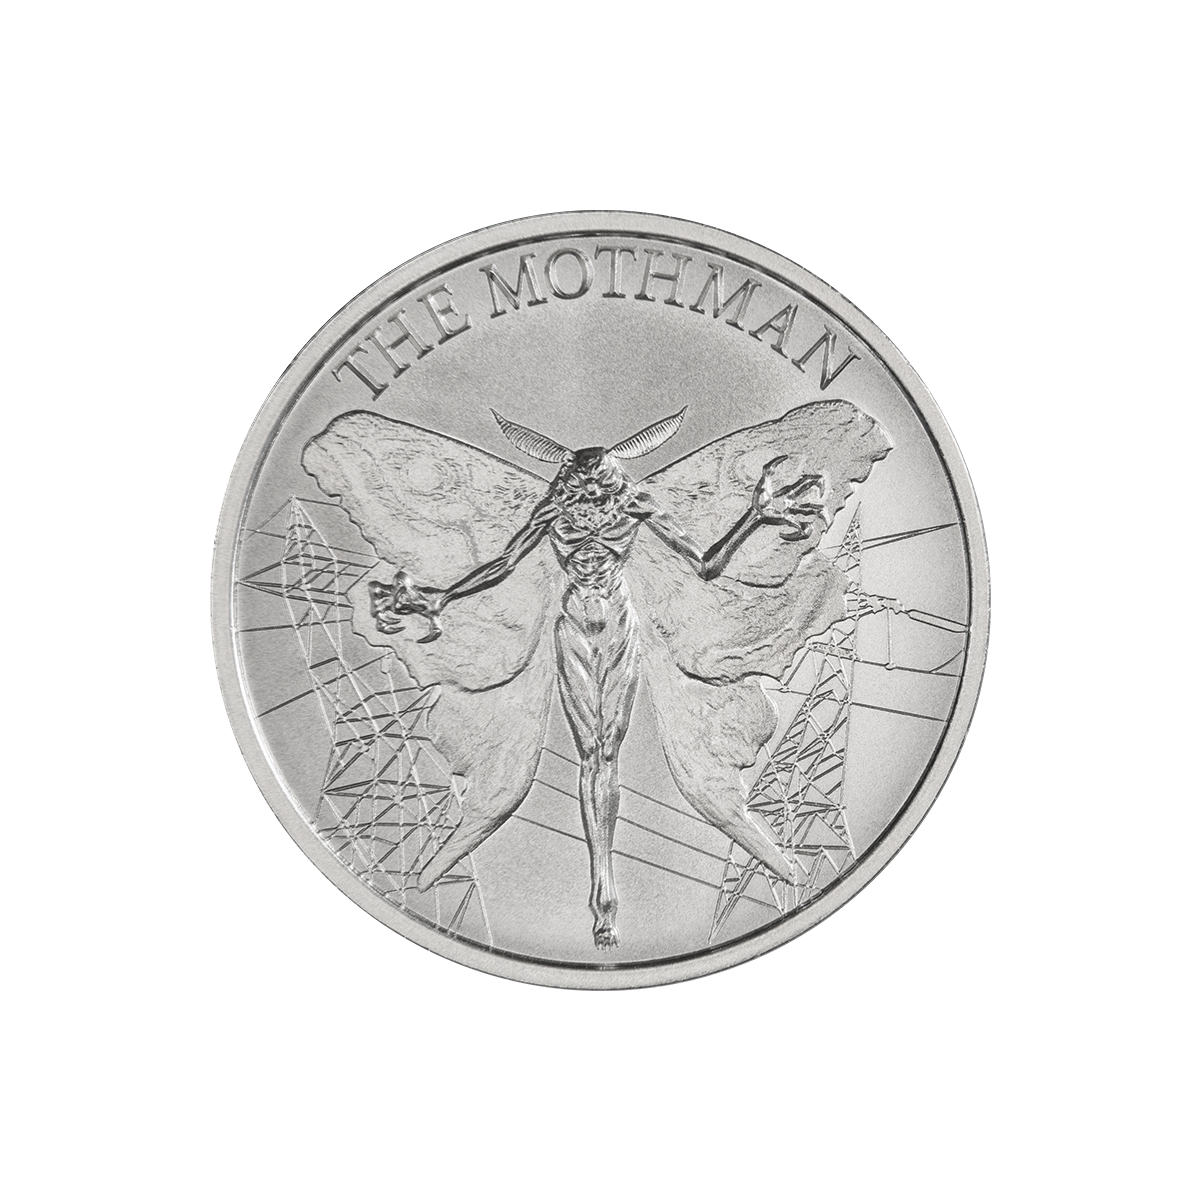 2021 – THE MOTHMAN – 1 TROY OUNCE – 39MM